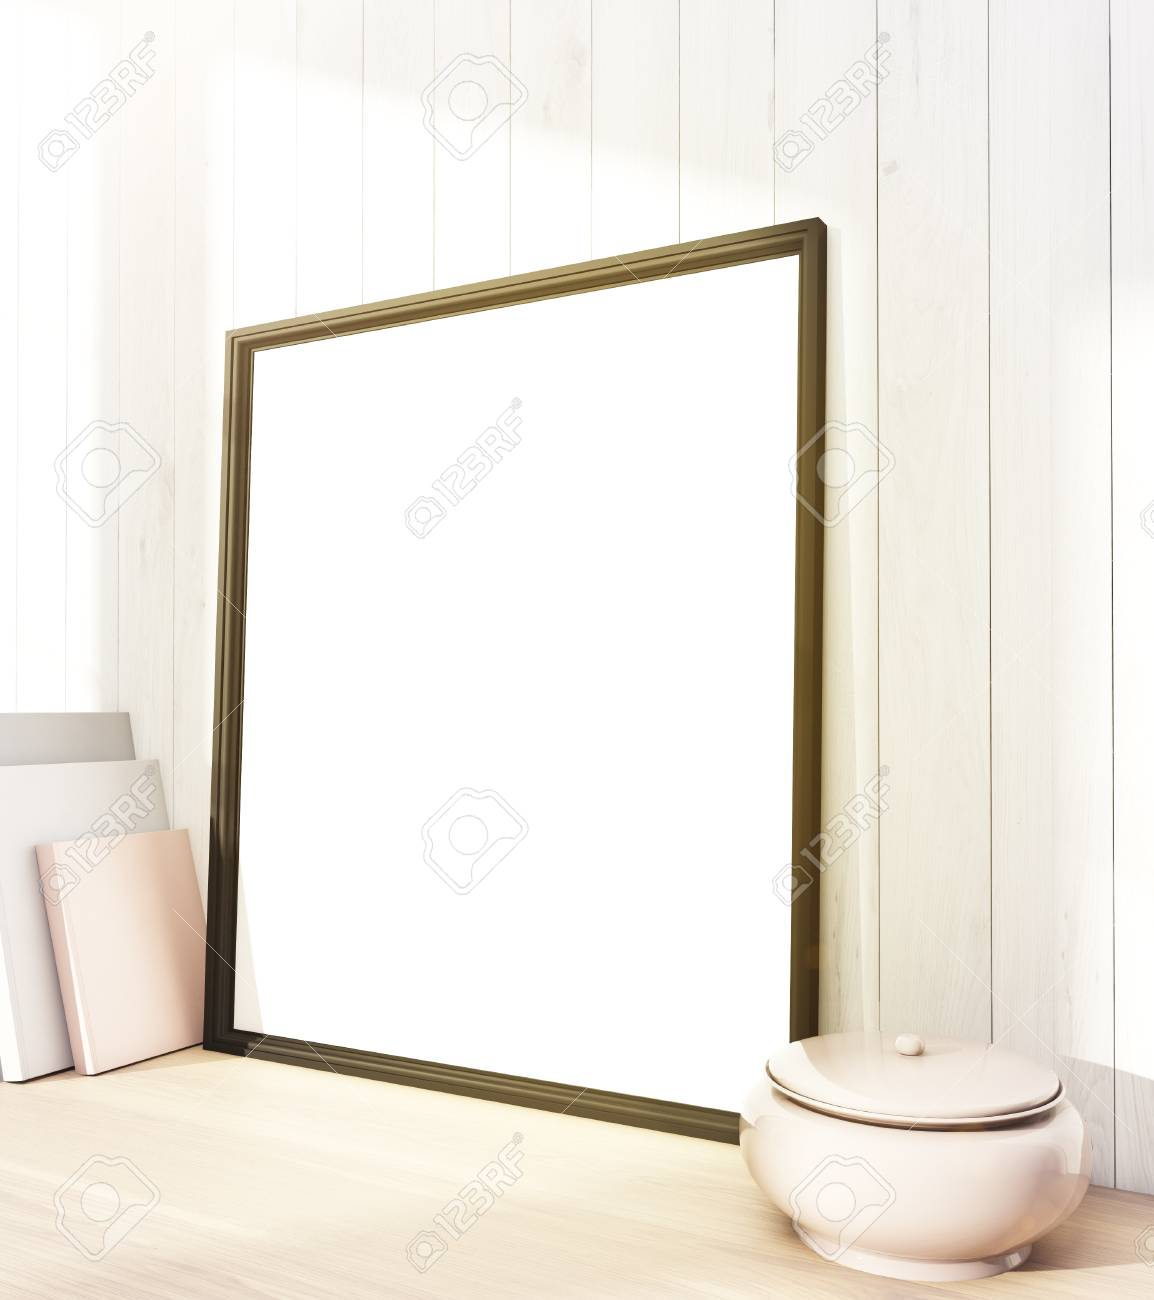 Blank Frame At Wall, Canvas To The Left, White Ceramic Pot To ...